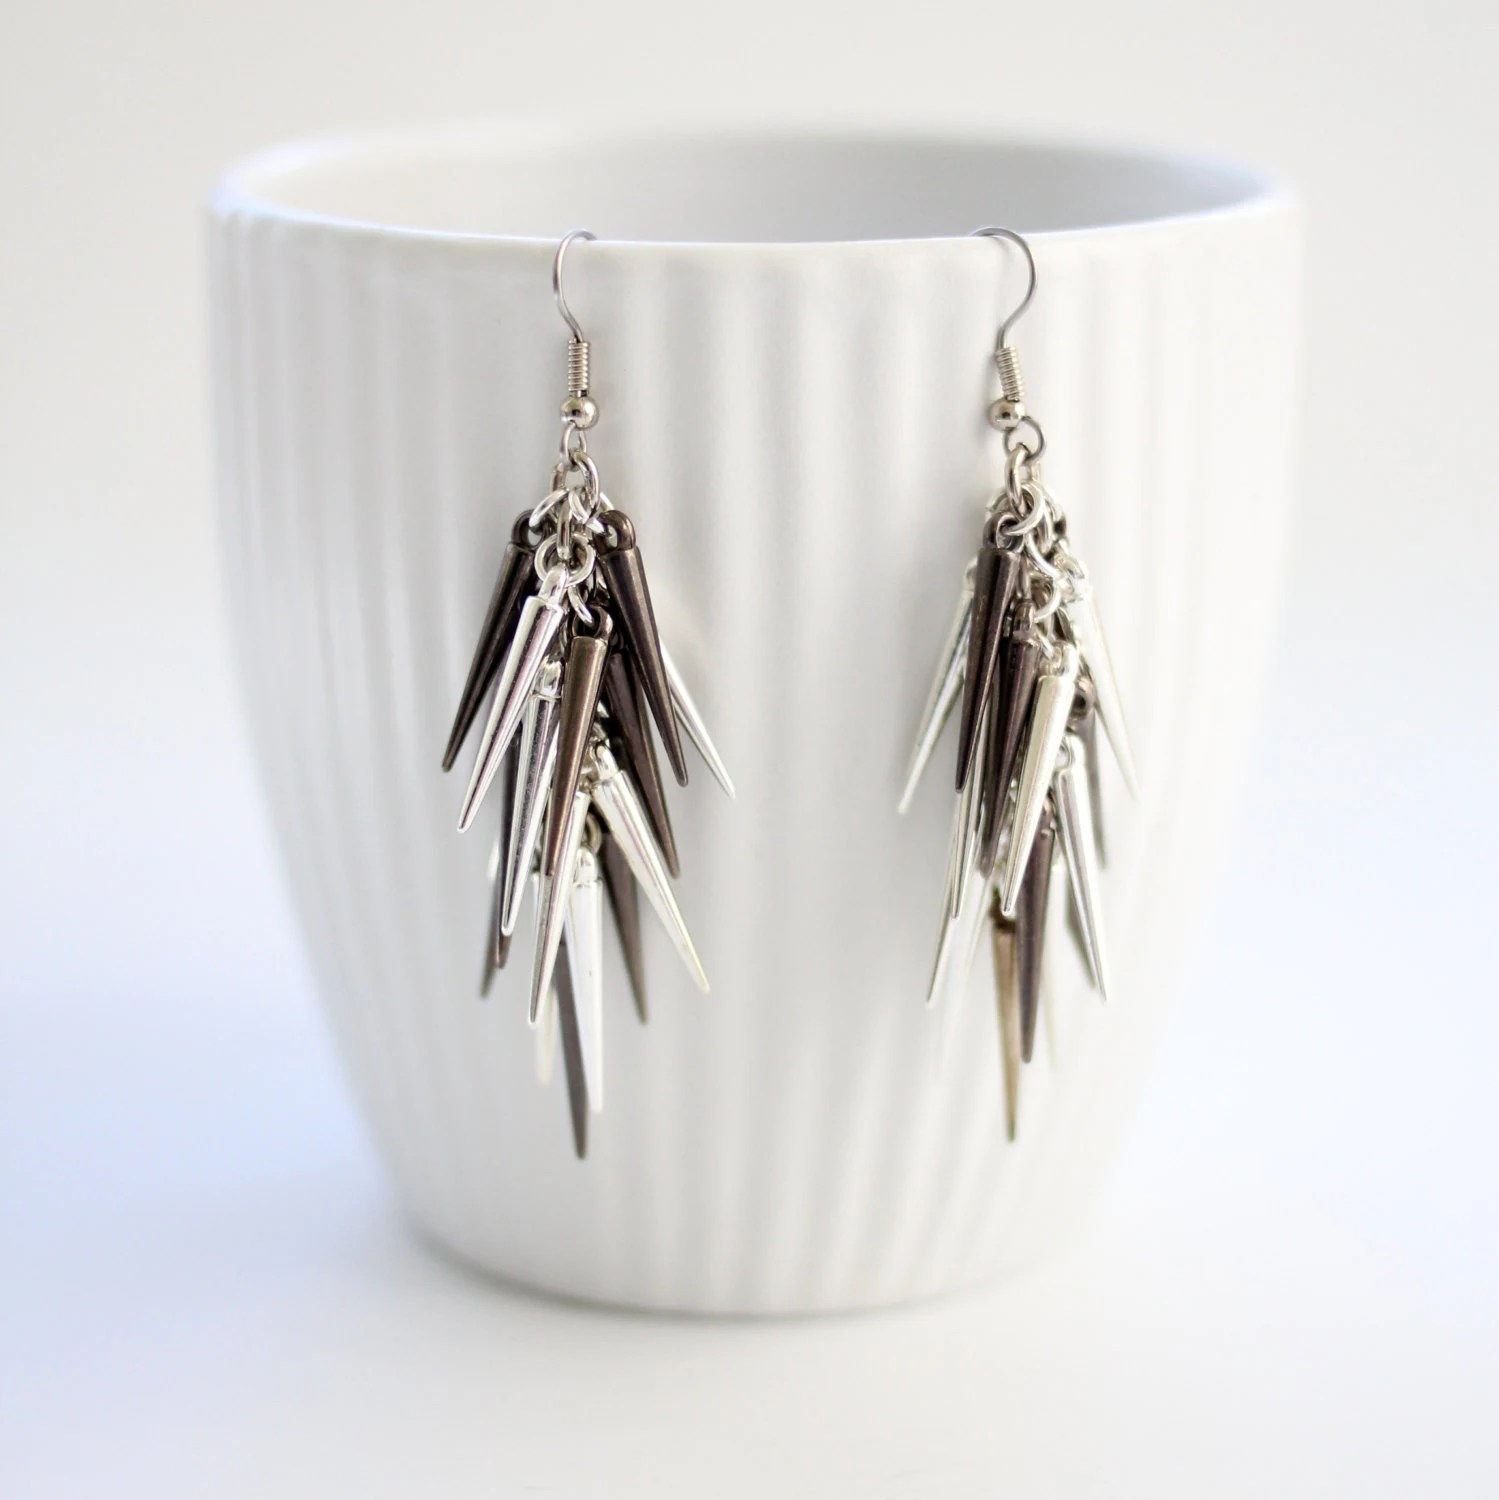 Small Gunmetal & Silver Spike Earrings by CalypteCollection